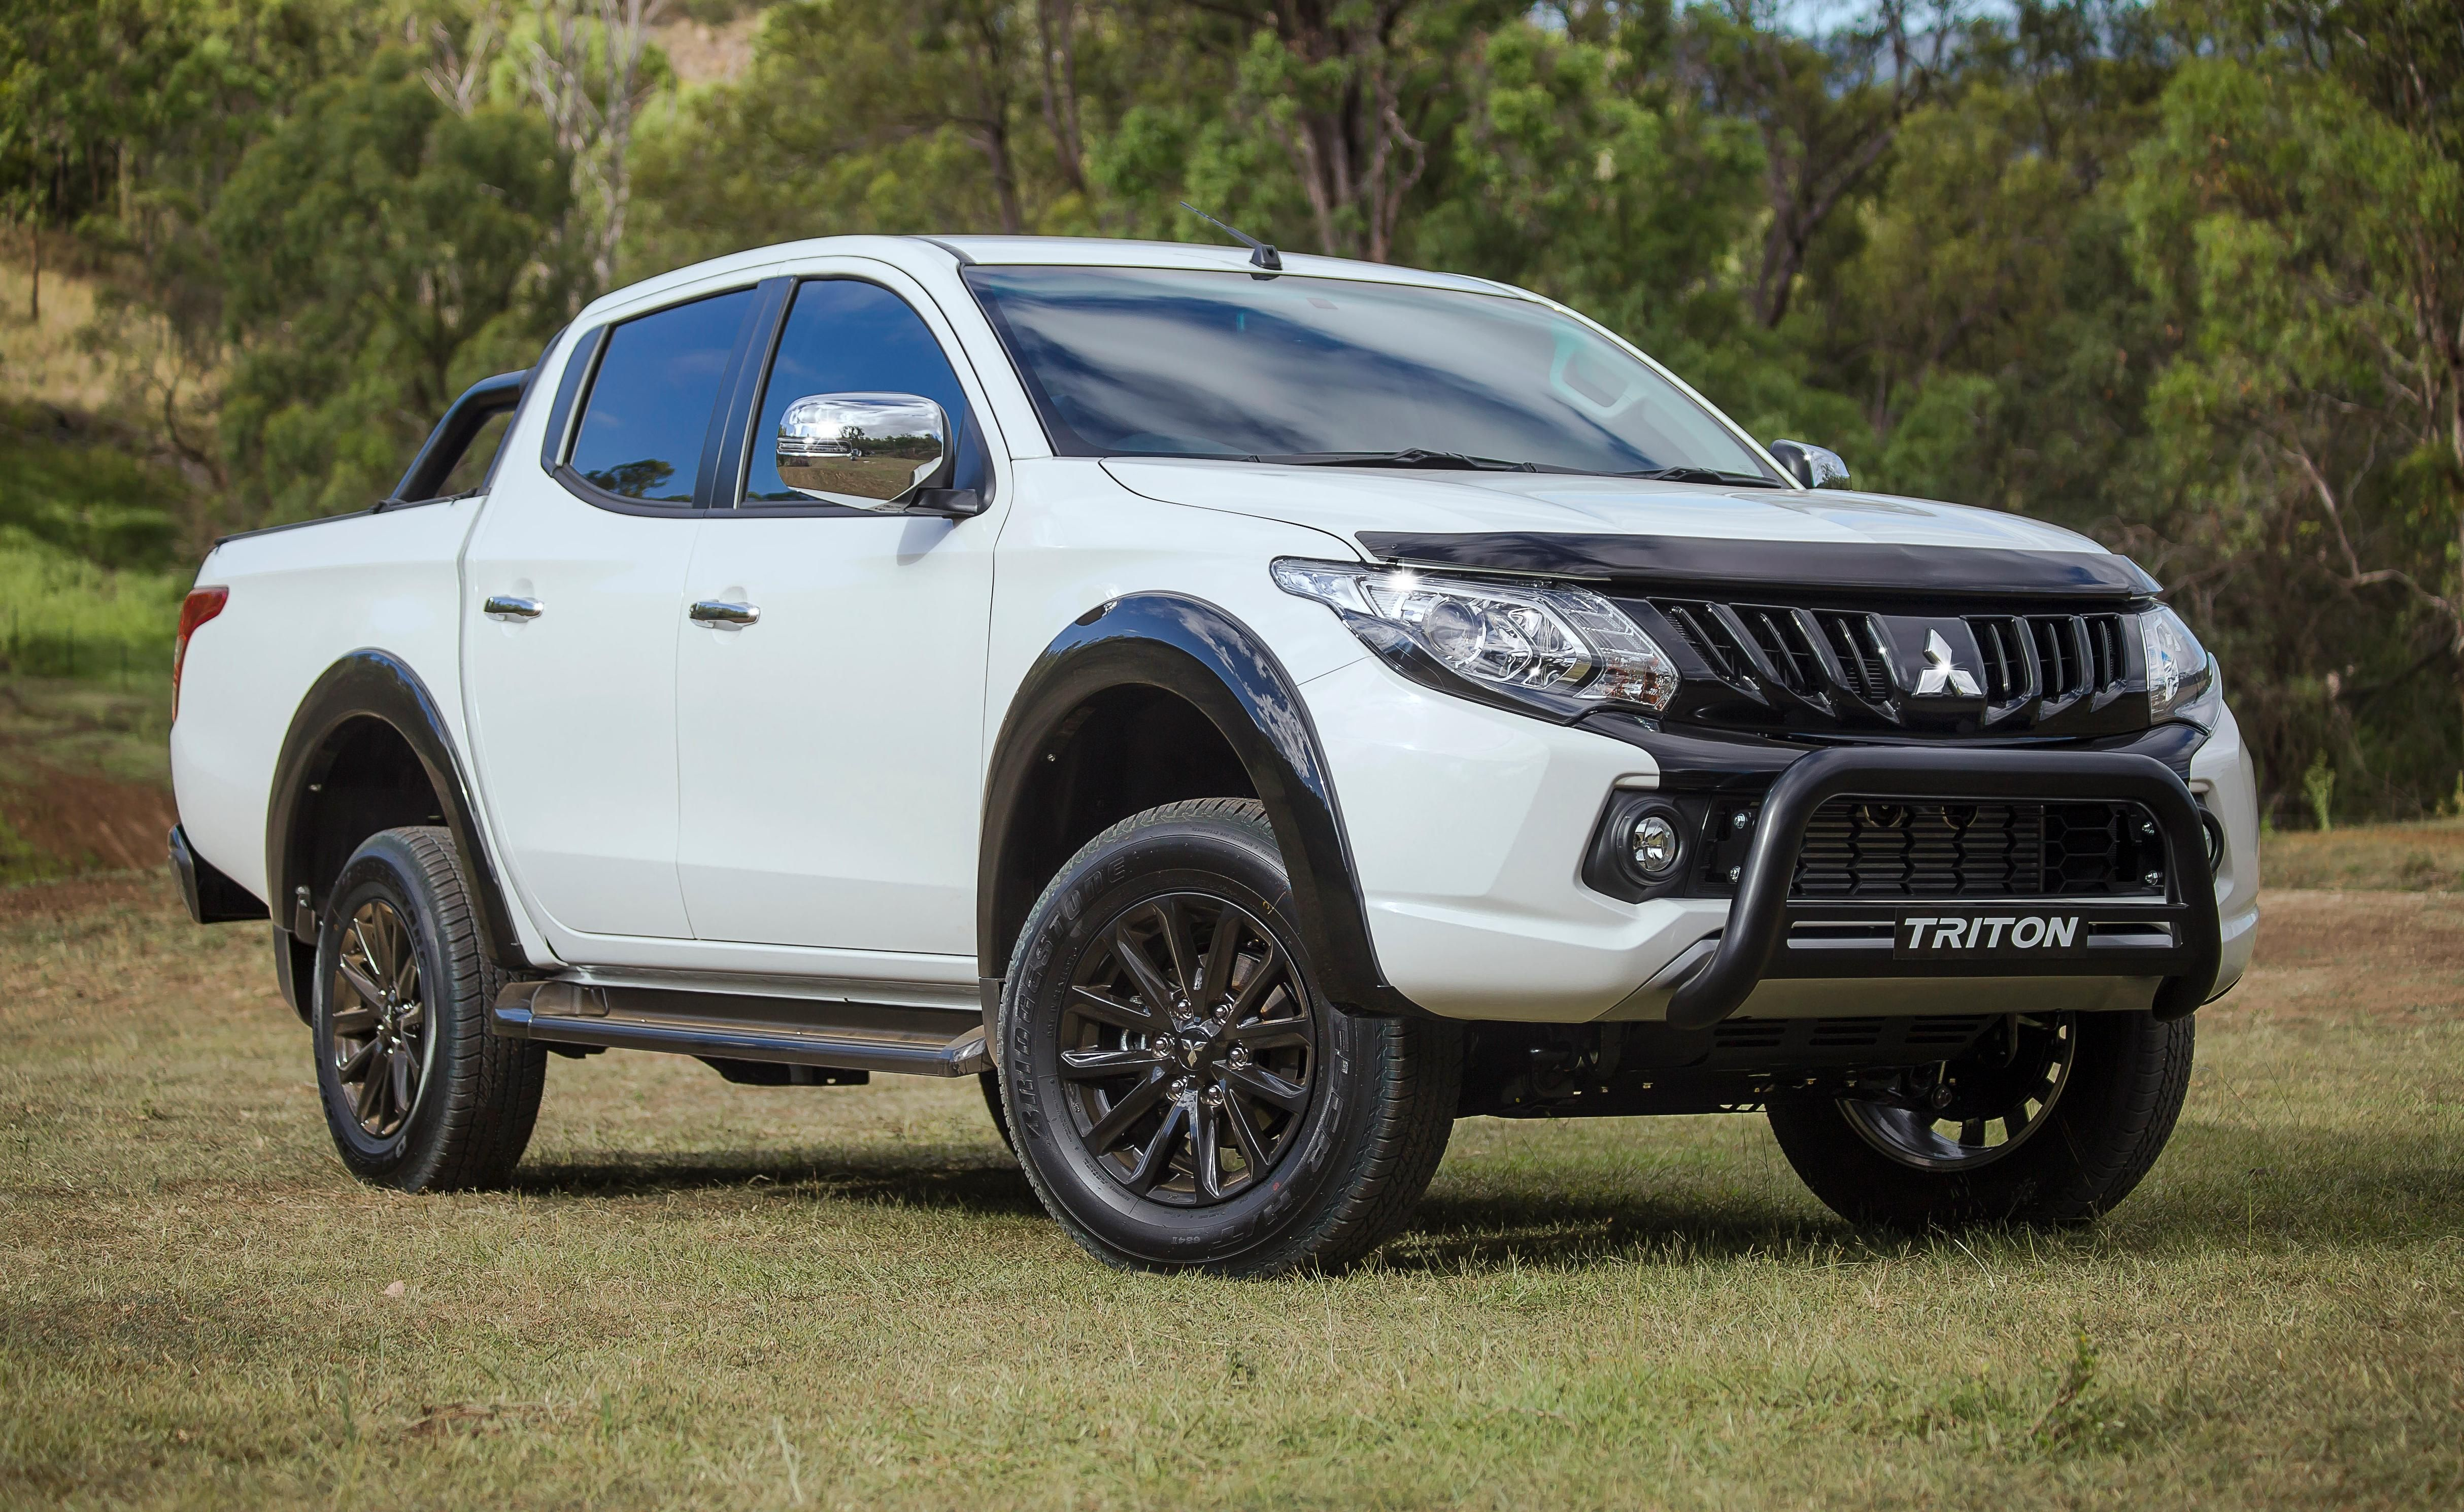 Amazing View Guys This Mitsubishi Looking Amazing With Bonnet Protectors From This Top Class Mitsubishi Mitsubishi Pickup Triton